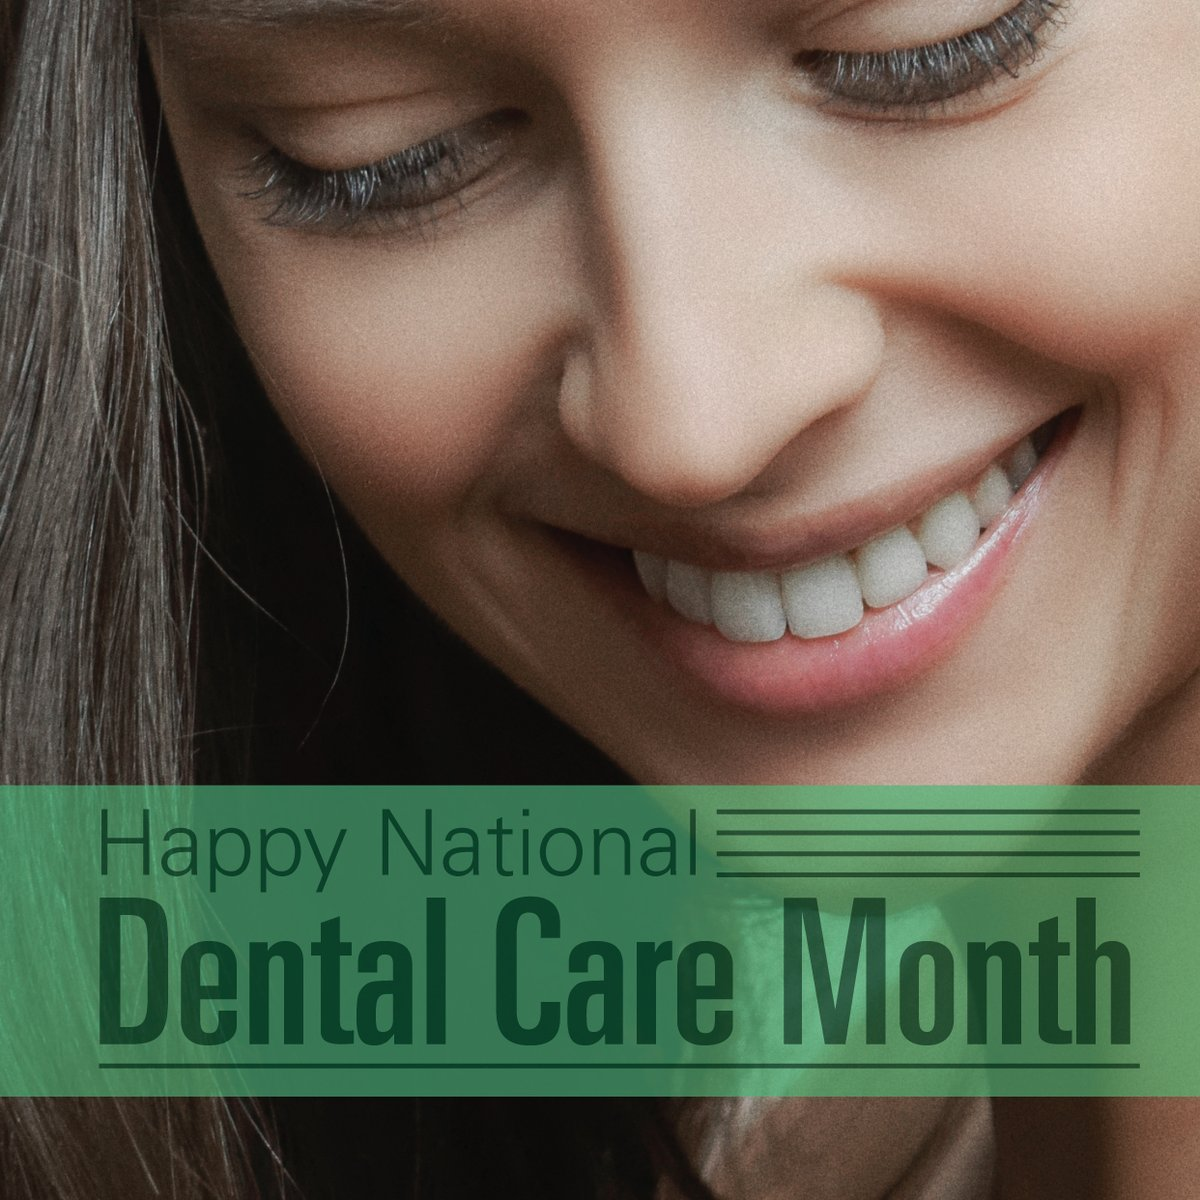 DID YOU KNOW it's National Dental Care Month? We love the work we do, and we're so grateful that we get to help our patients have happy, healthy smiles! #handhygiene #makingadifference   #757 #williamsburg #teeth #dentist #gentledentist #smile #teethcleaning #teethwhitenin...pic.twitter.com/YG8EQL4aeF